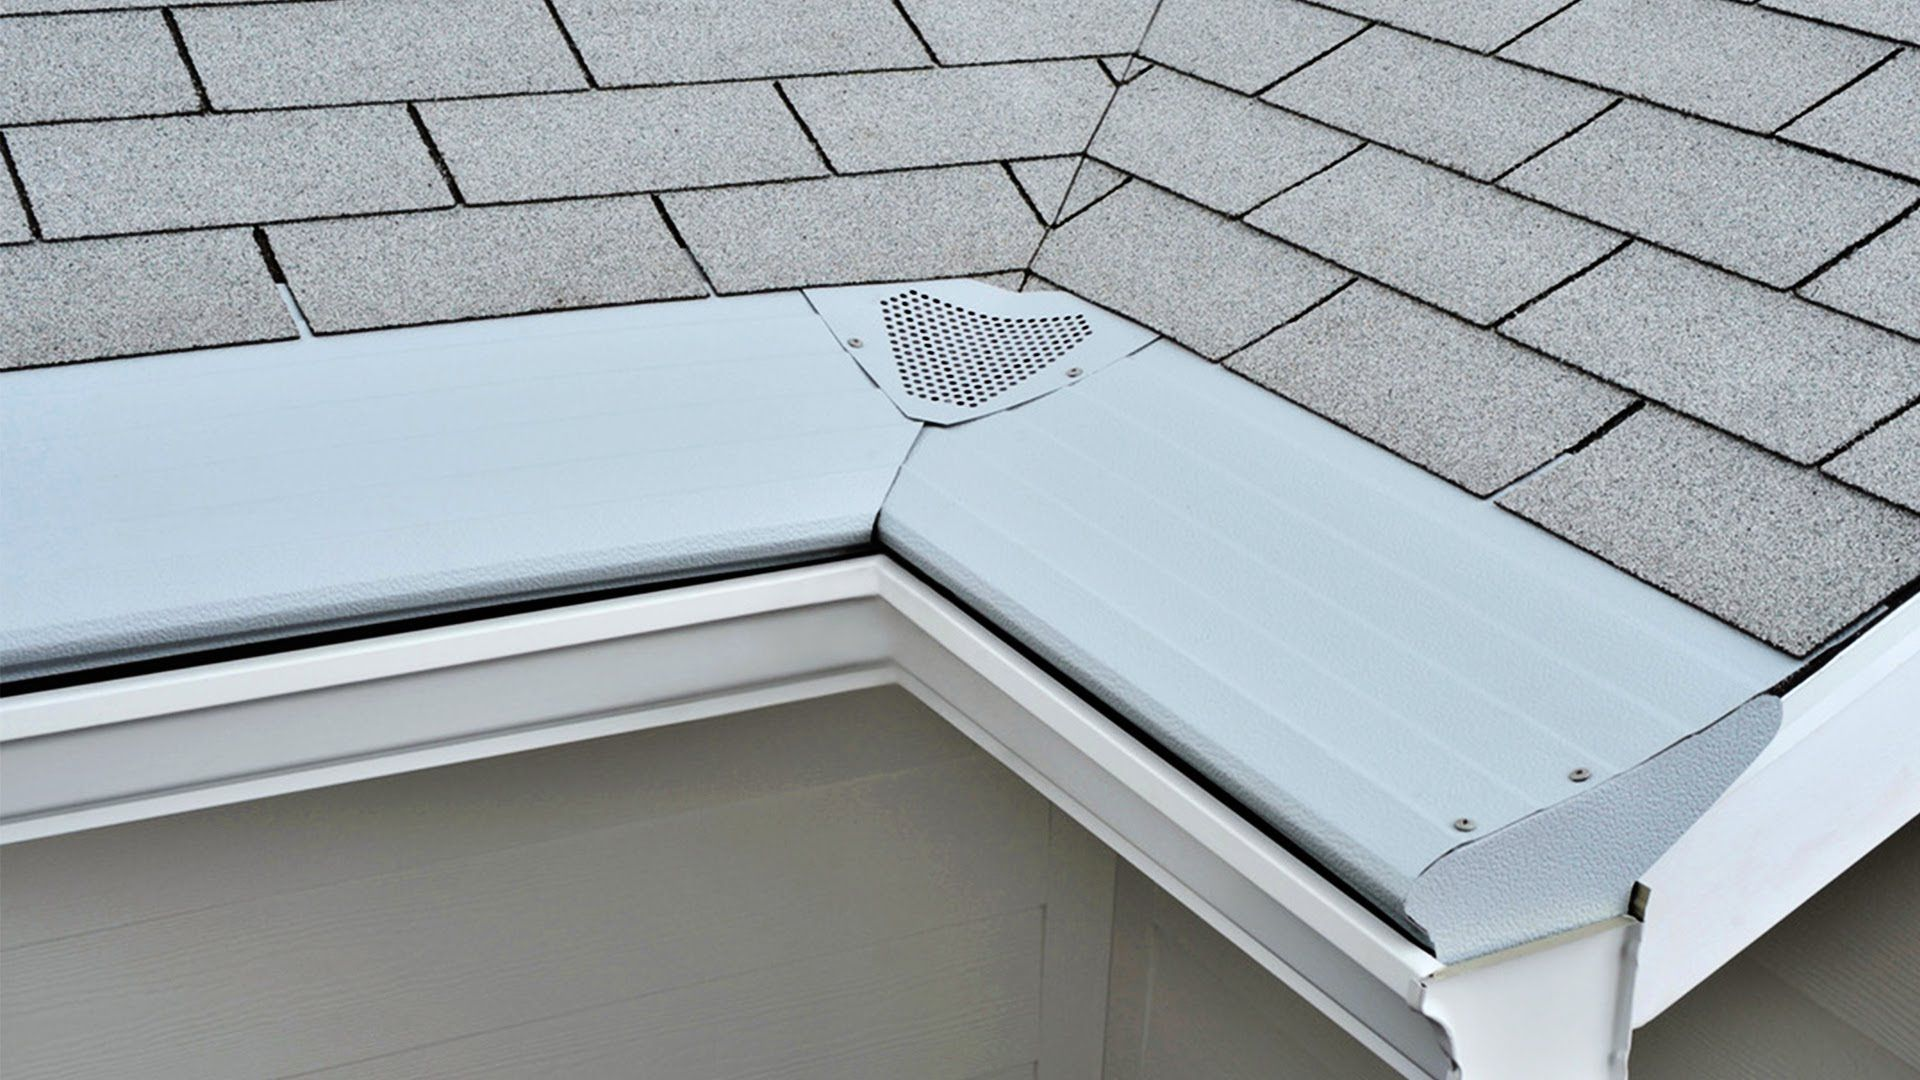 Tired Of Cleaning Your Gutters It S Time To Get Off The Ladder And Get Gutter Helmet With Our Gutte How To Install Gutters Cleaning Gutters Gutter Protection